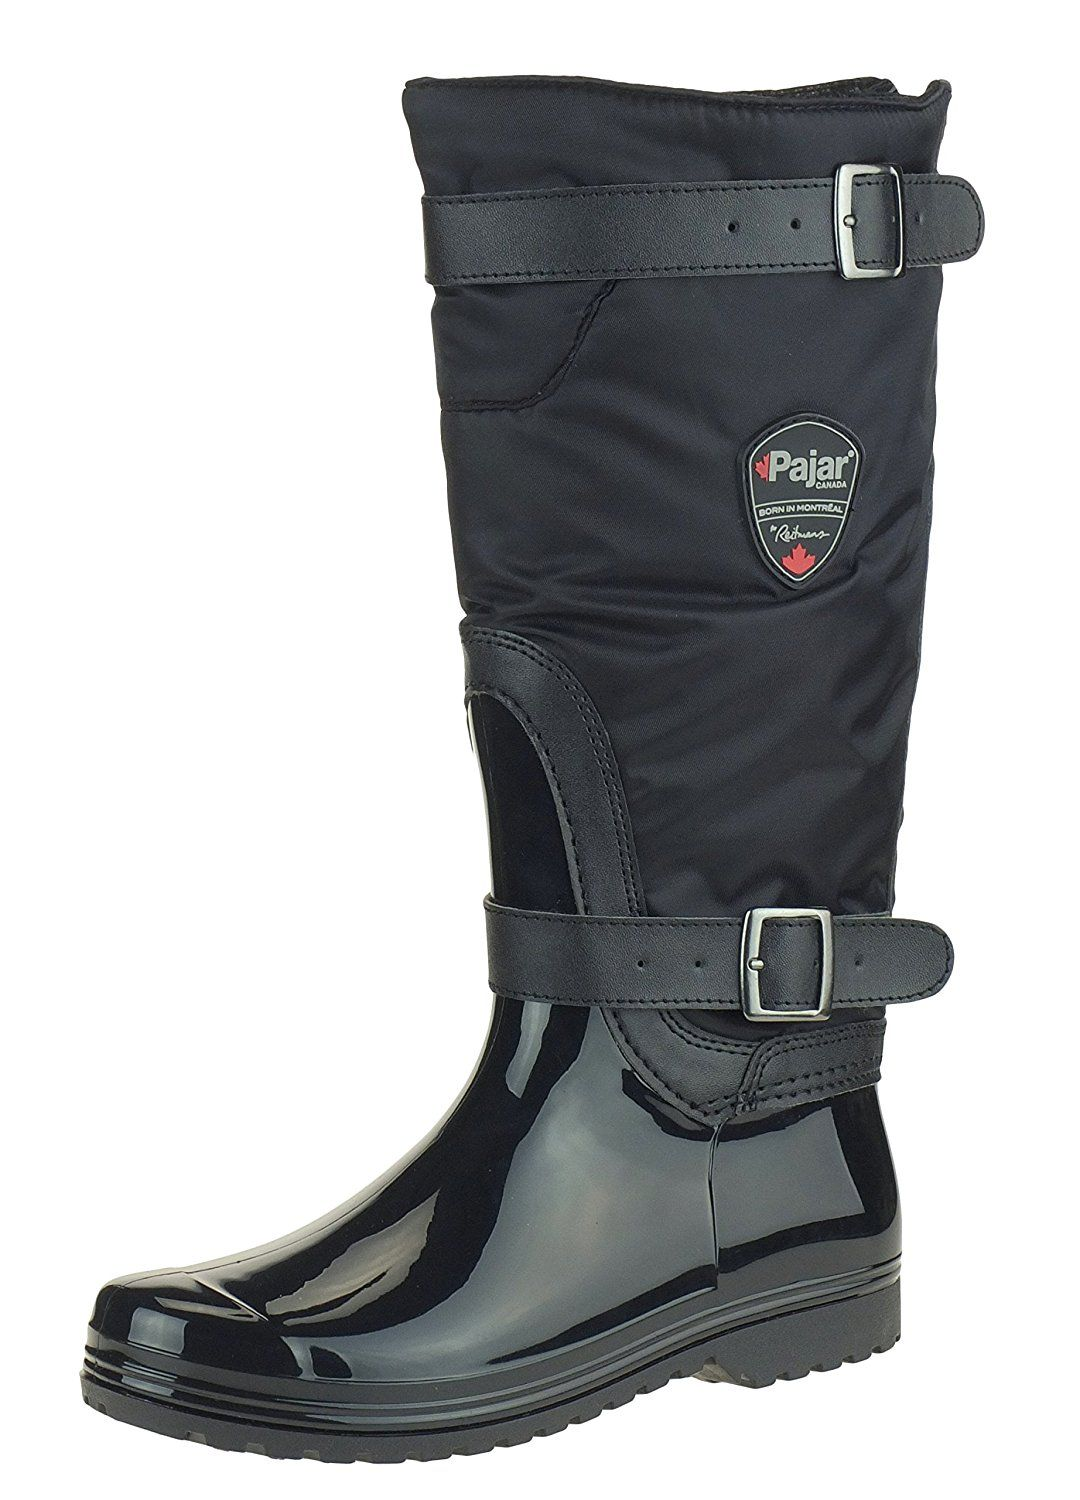 Pajar RORY Women's Insulated Rain Boots, Black *** Read more reviews of the product by visiting the link on the image.